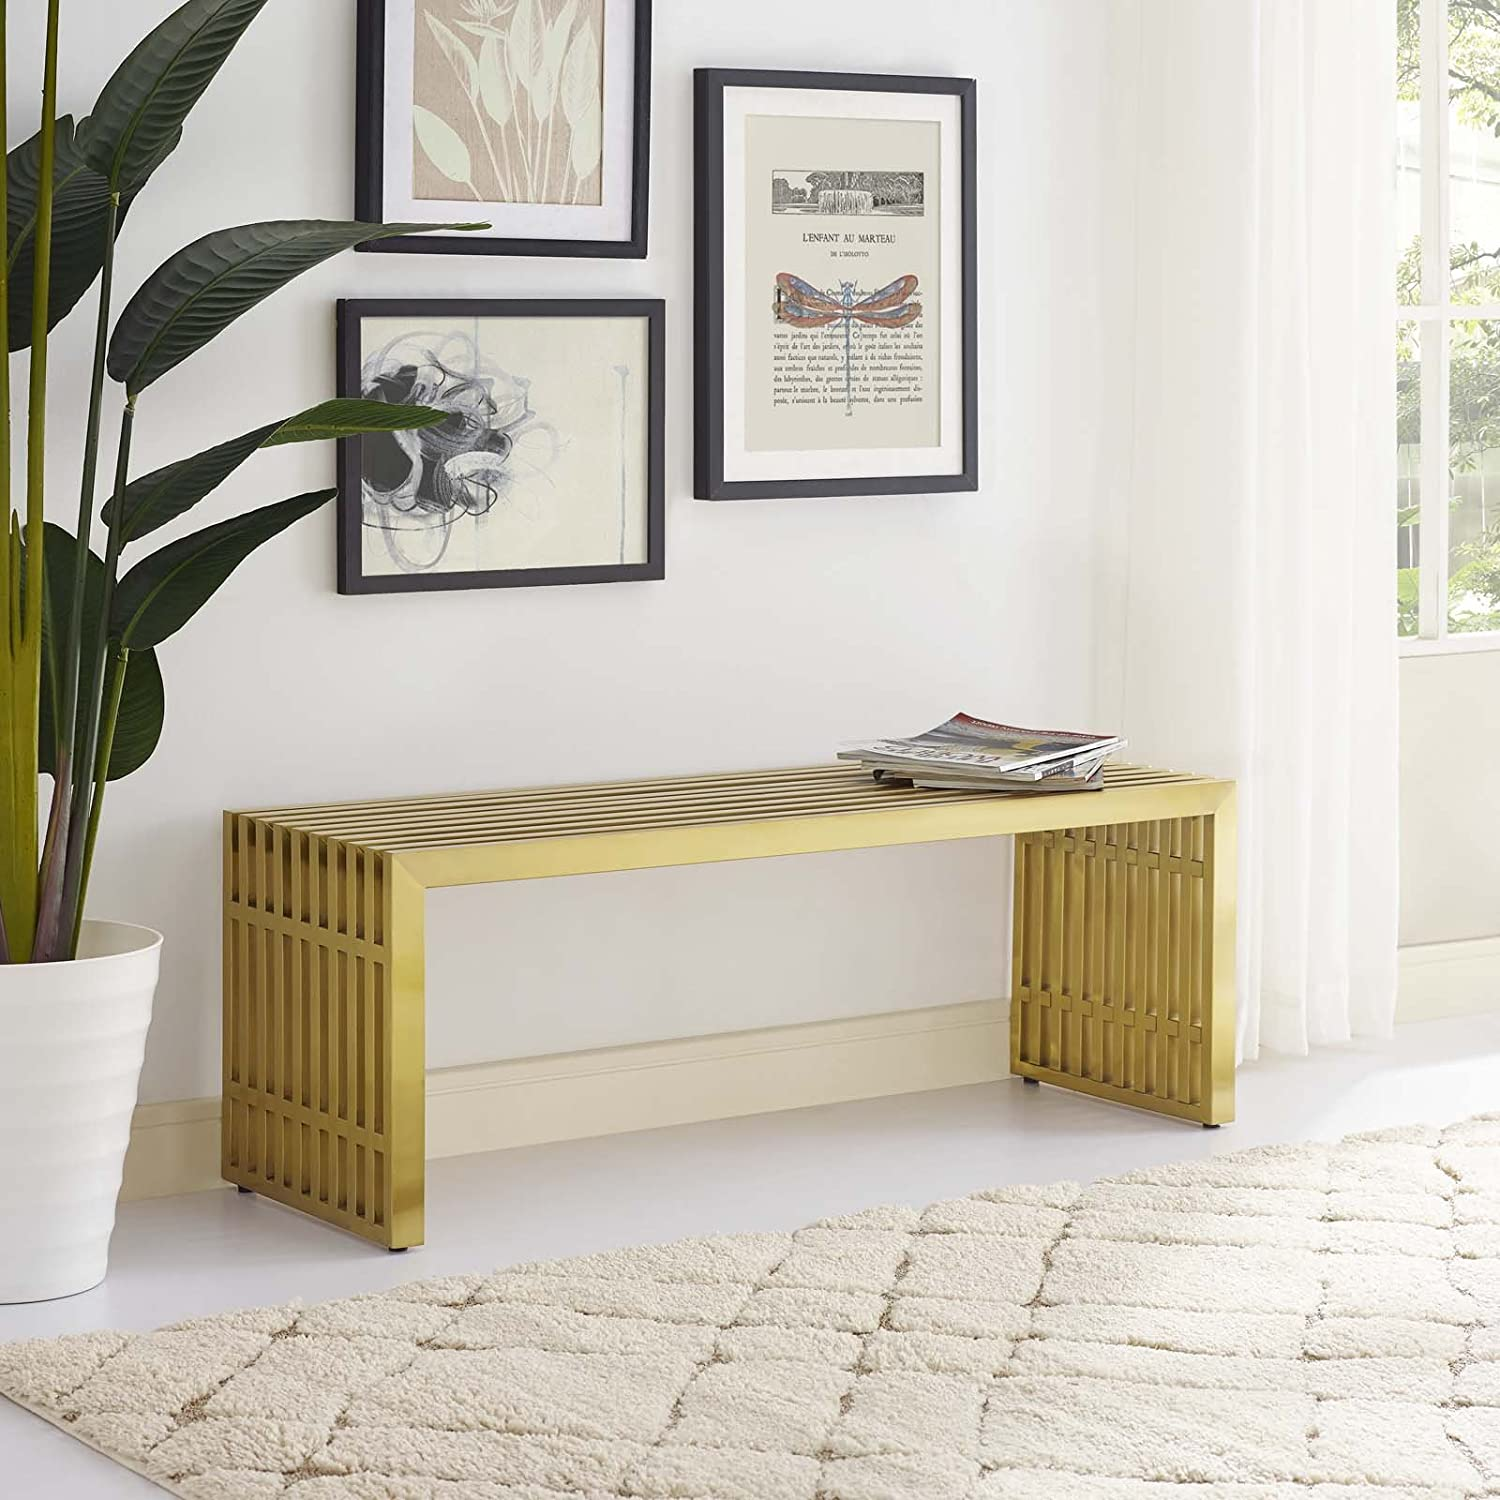 Modway Gridiron Contemporary Modern Gold Stainless Steel Medium Bench, 46.5